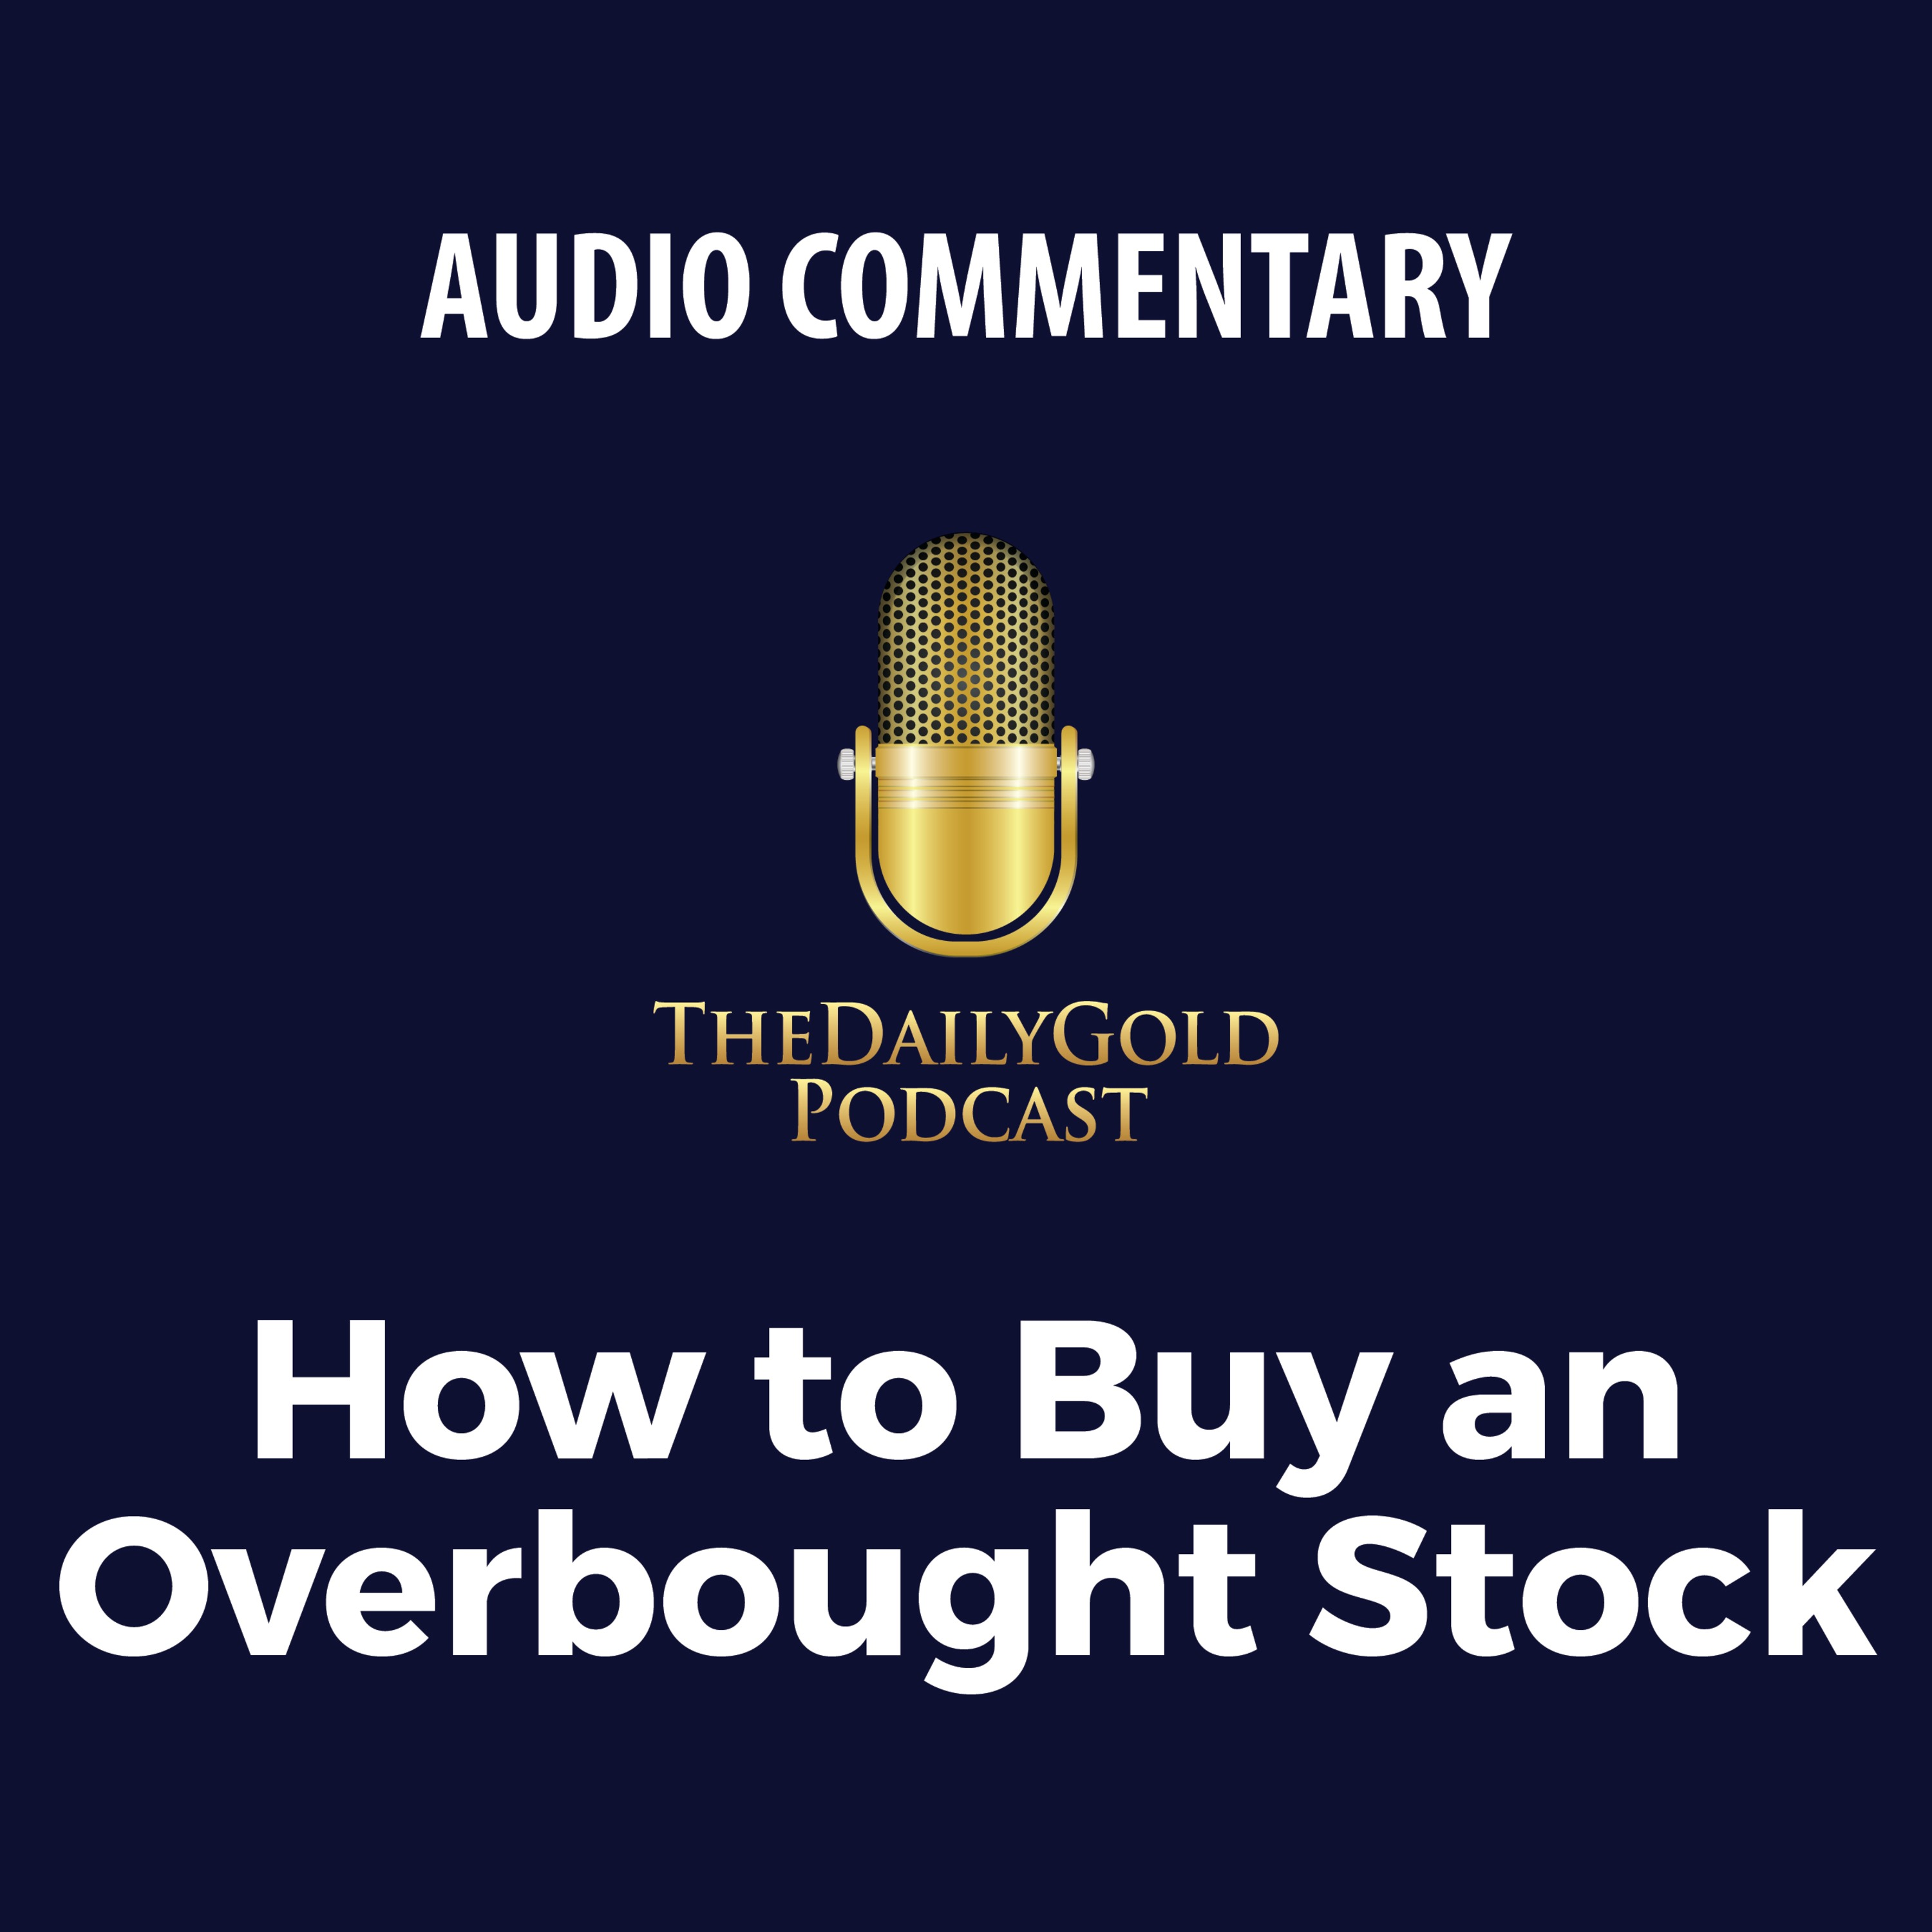 How to Buy an Overbought Stock